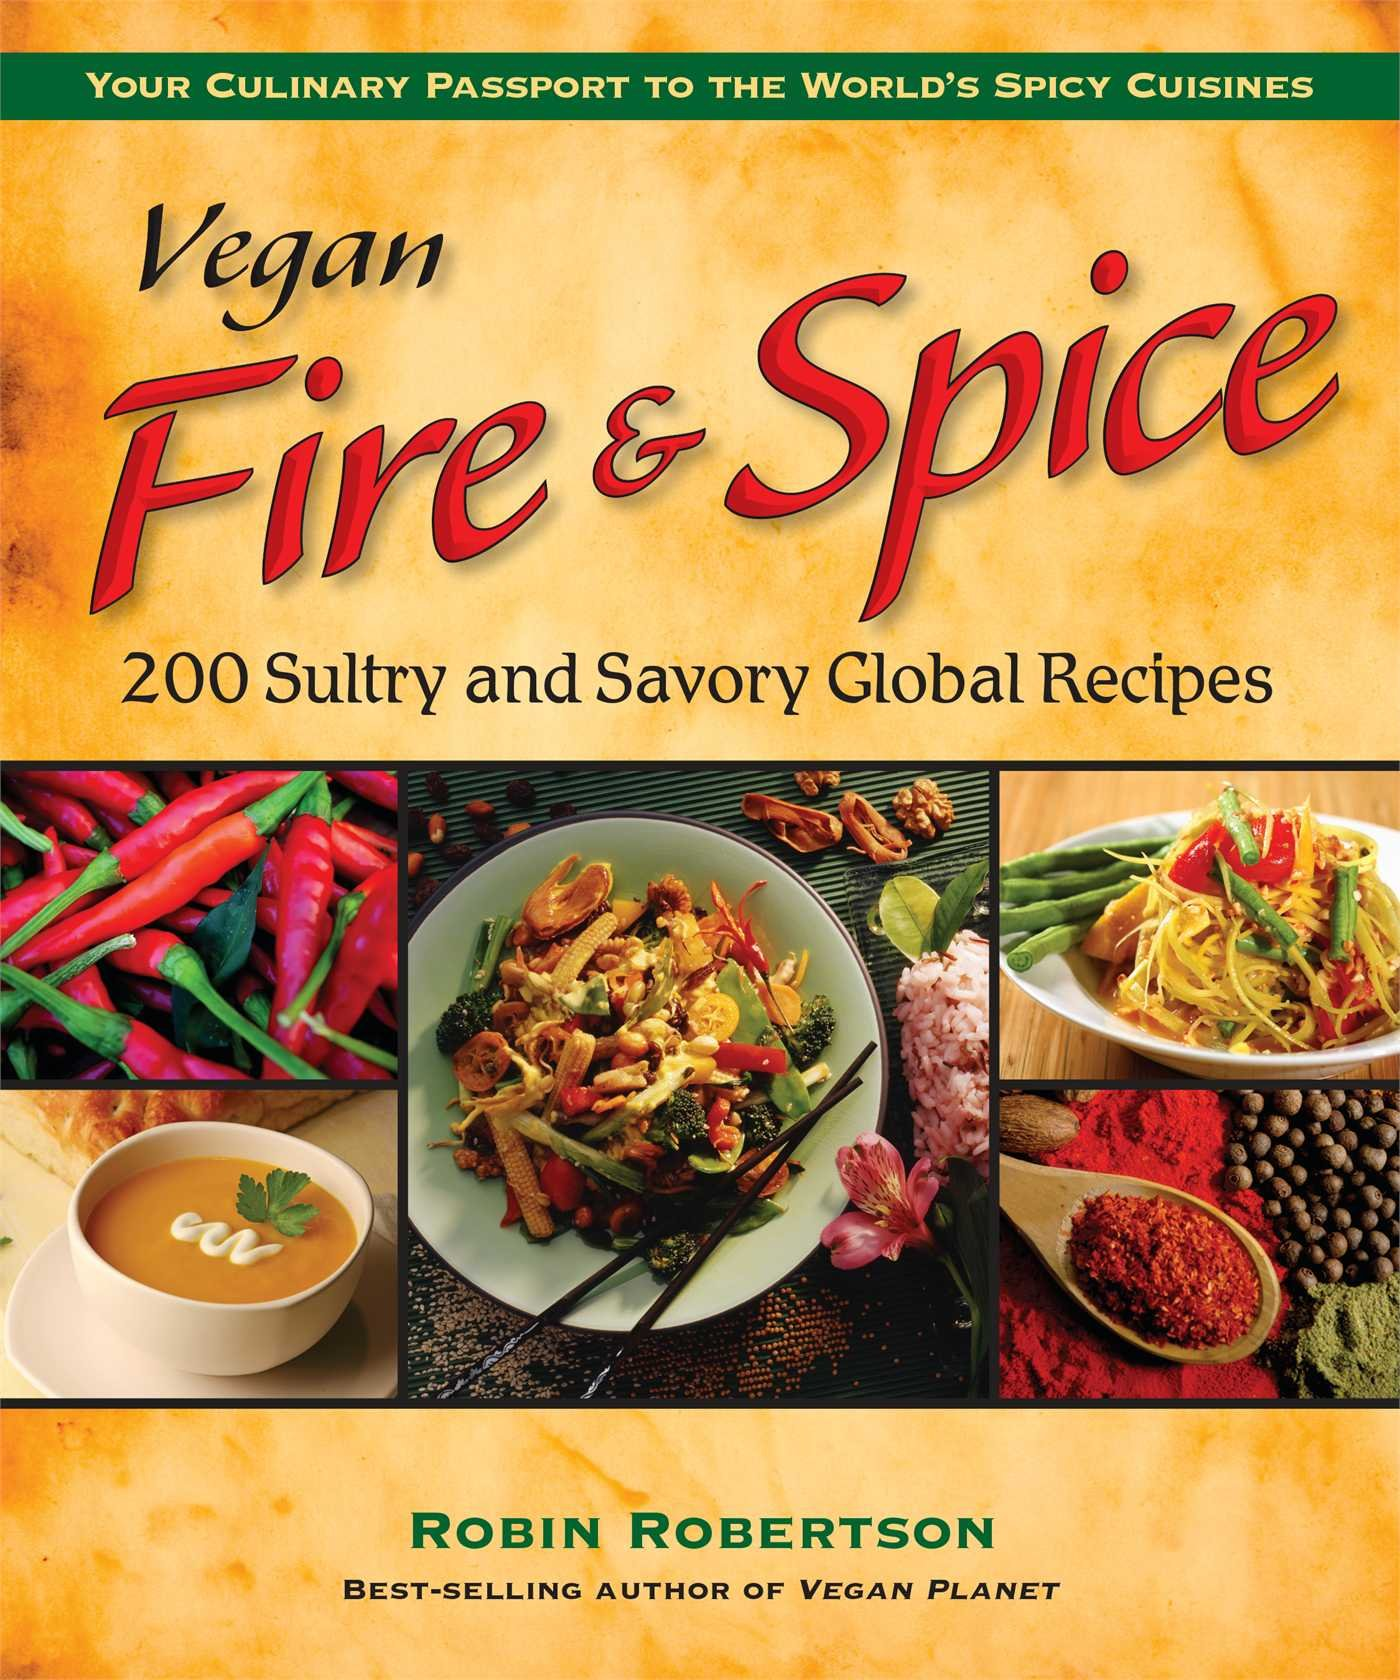 Vegan fire spice 200 sultry and savory global recipes robin vegan fire spice 200 sultry and savory global recipes robin robertson 9780980013108 amazon books forumfinder Image collections